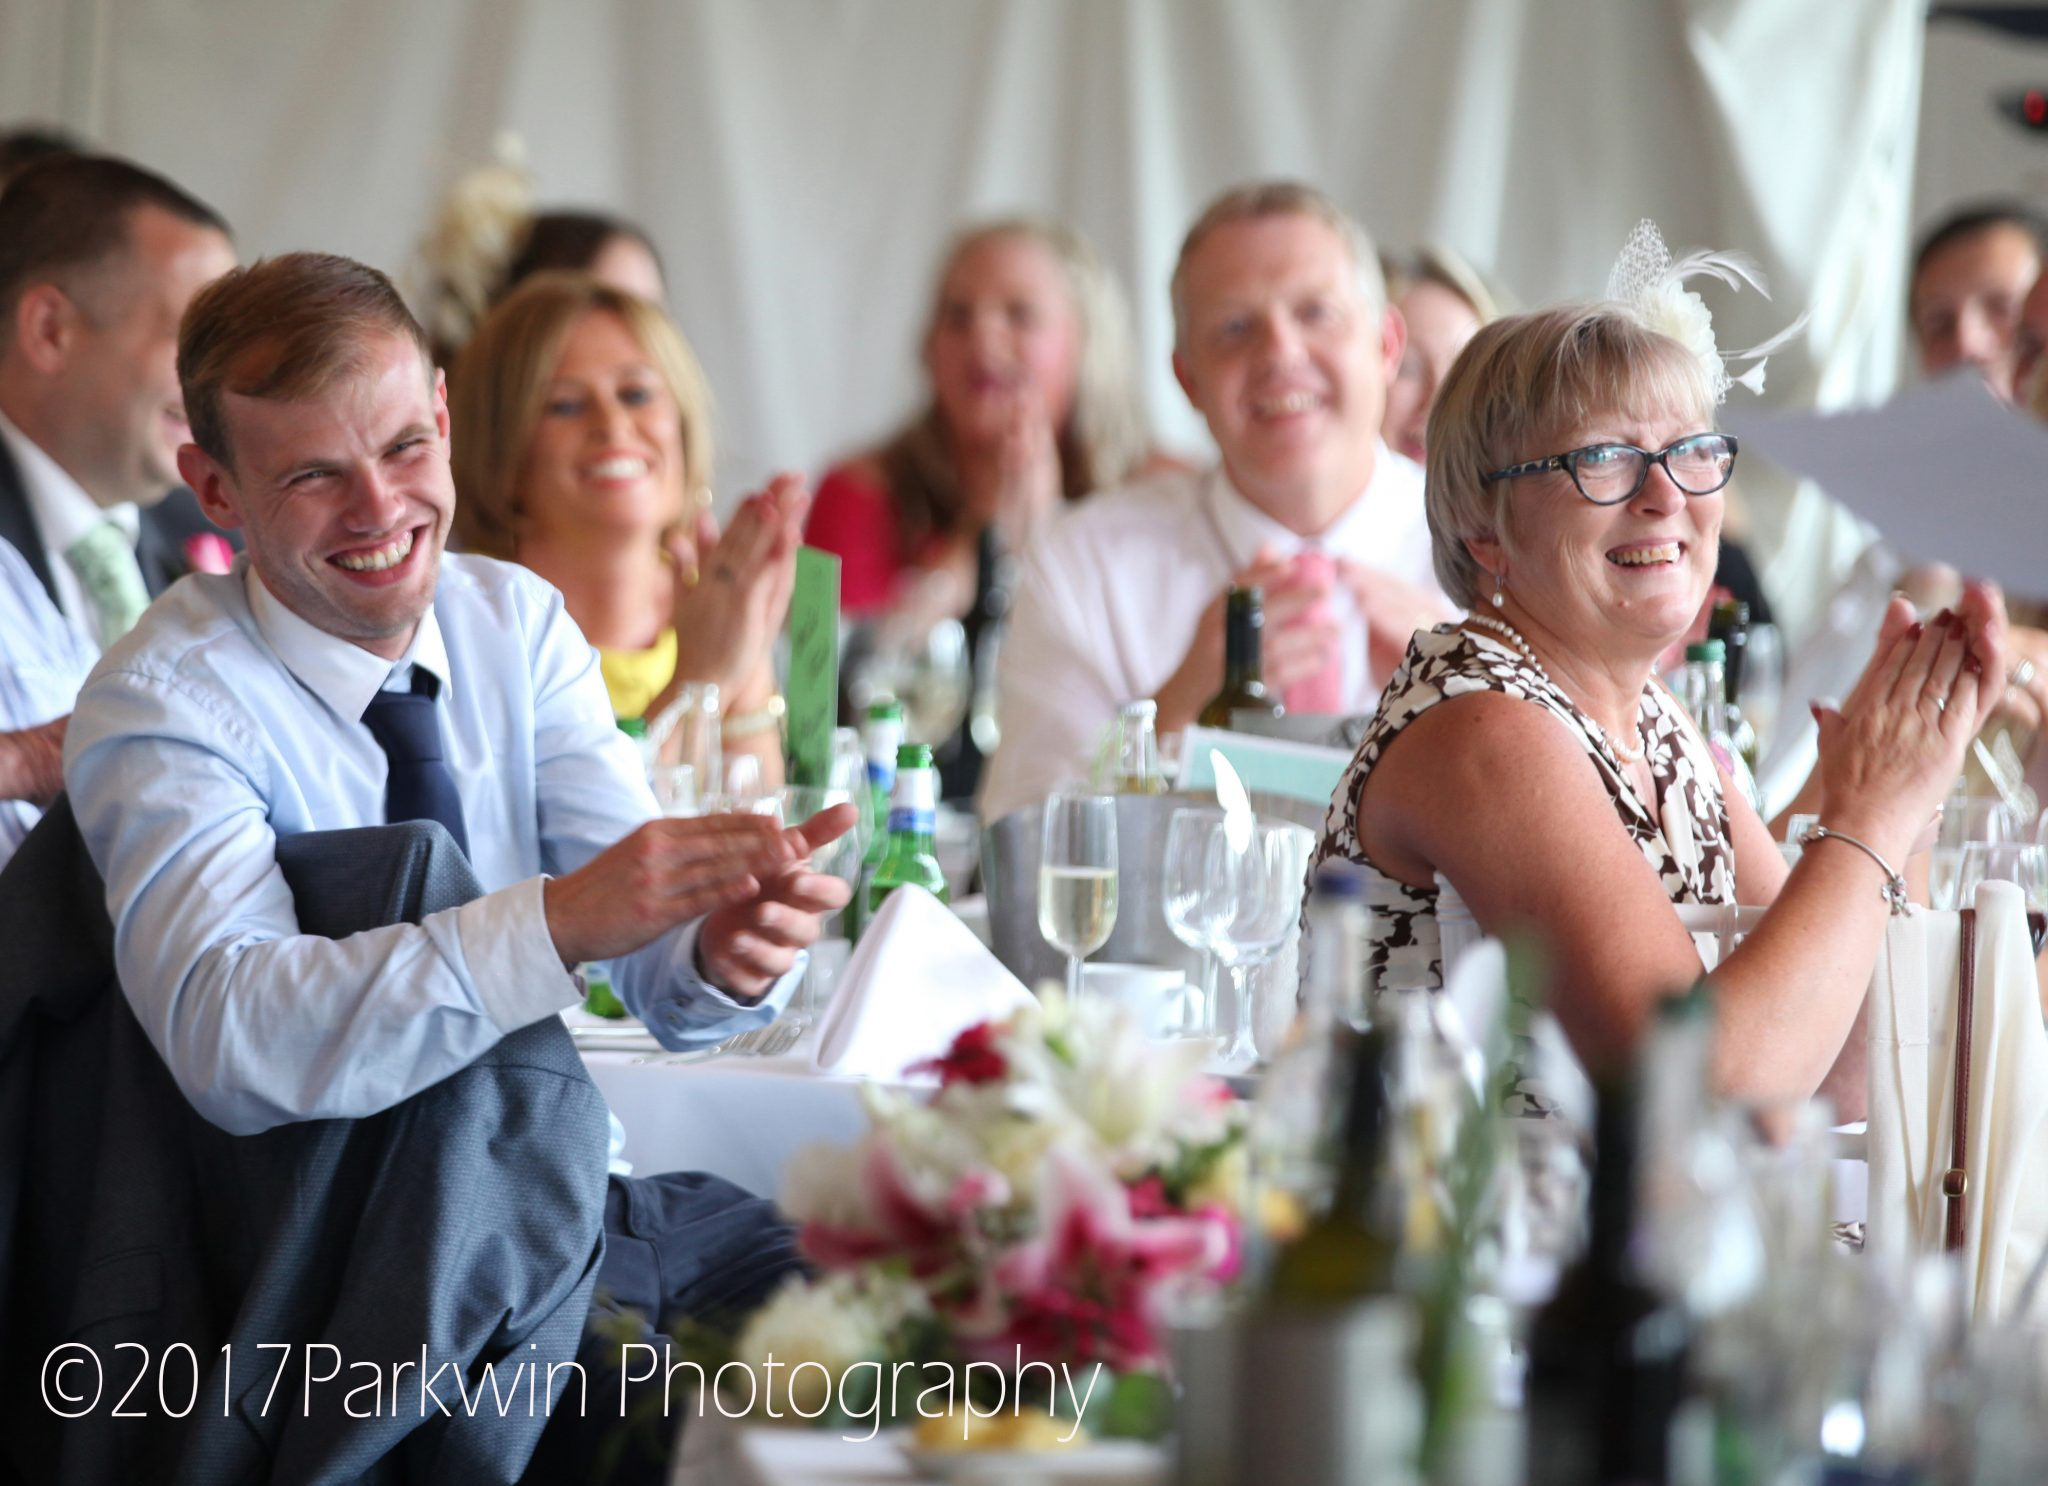 Guests listening to speeches at Hunton Park wedding